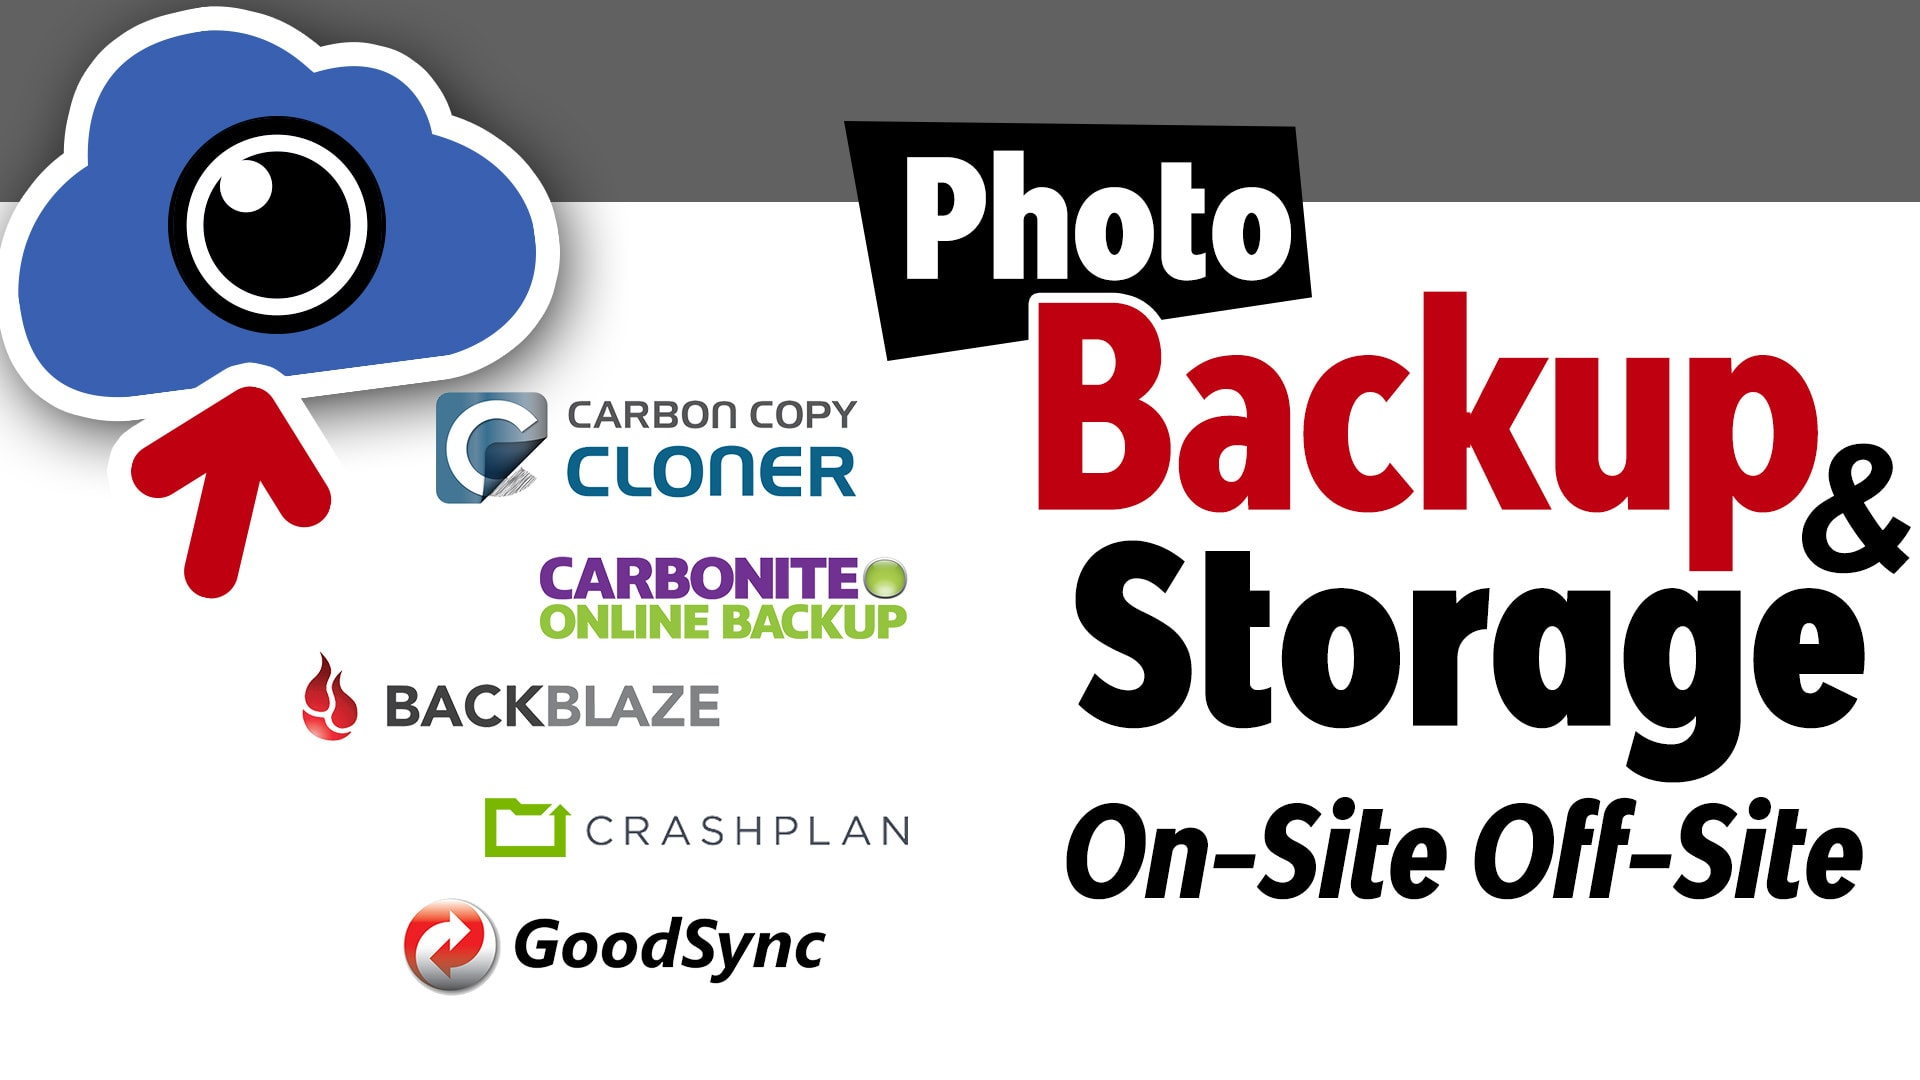 Photo of Photo Backup: How to create an automated system with cloud storage to protect your photographs